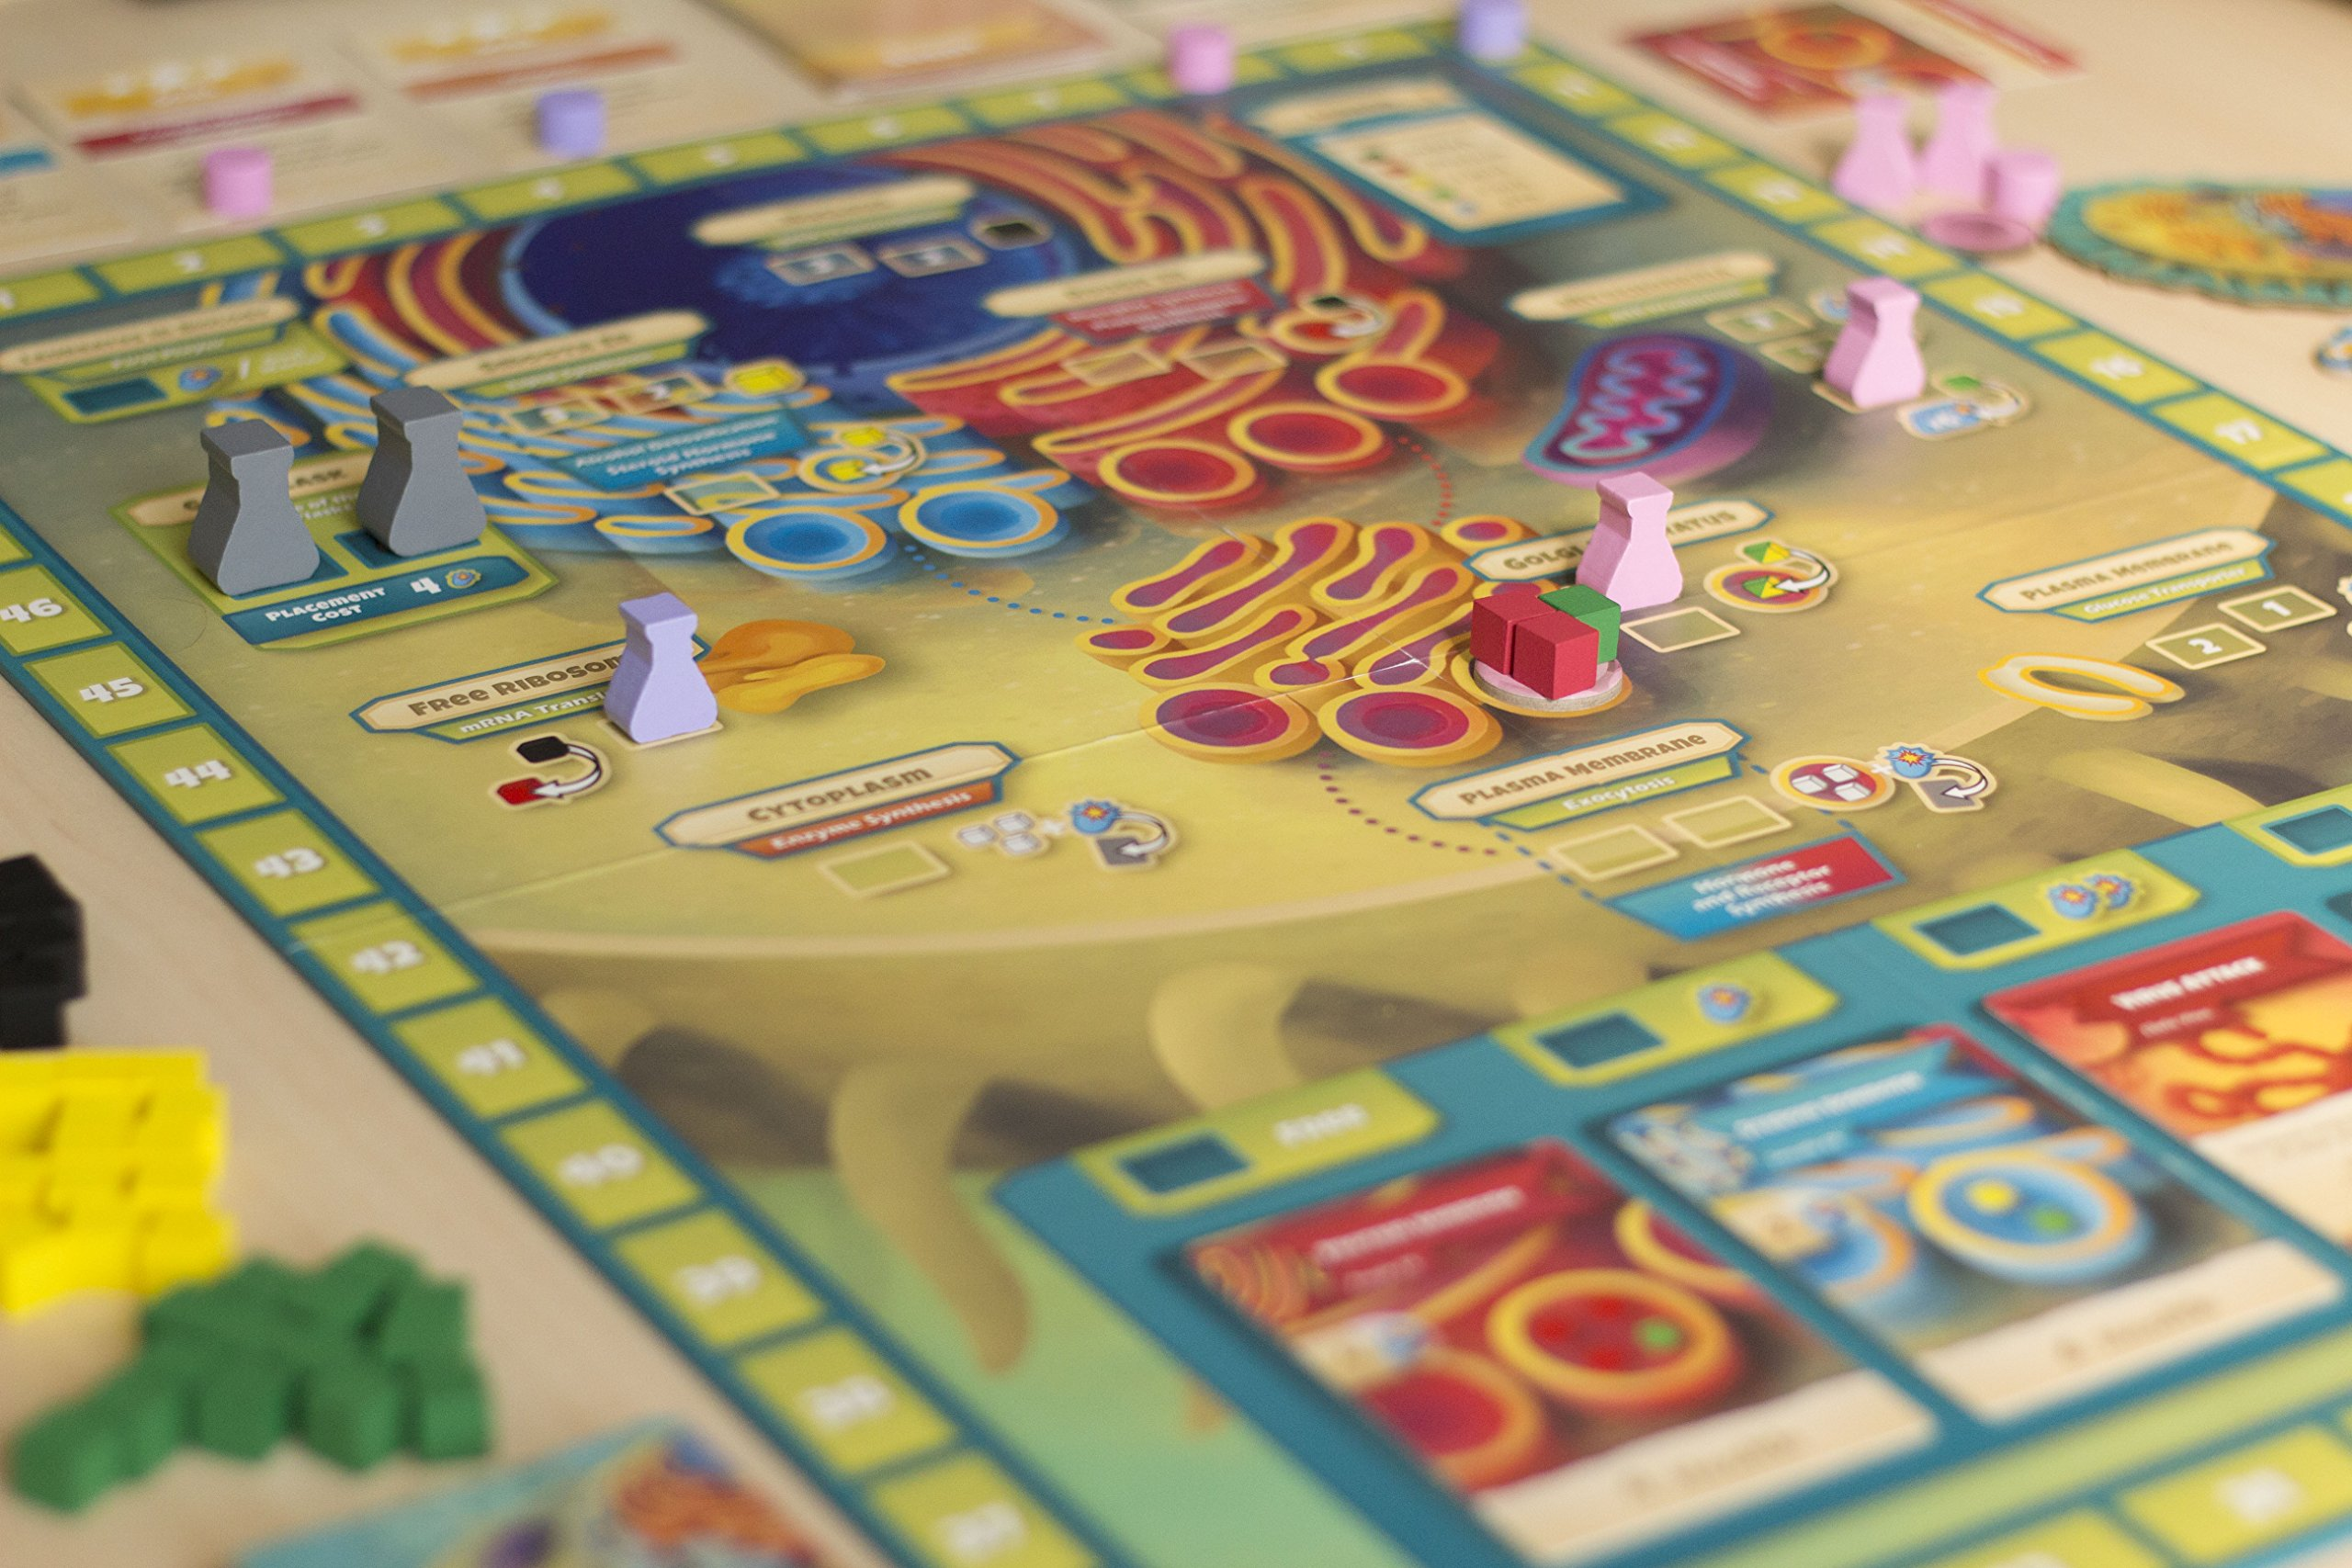 Genius Games Cytosis: A Cell Biology, Board Game